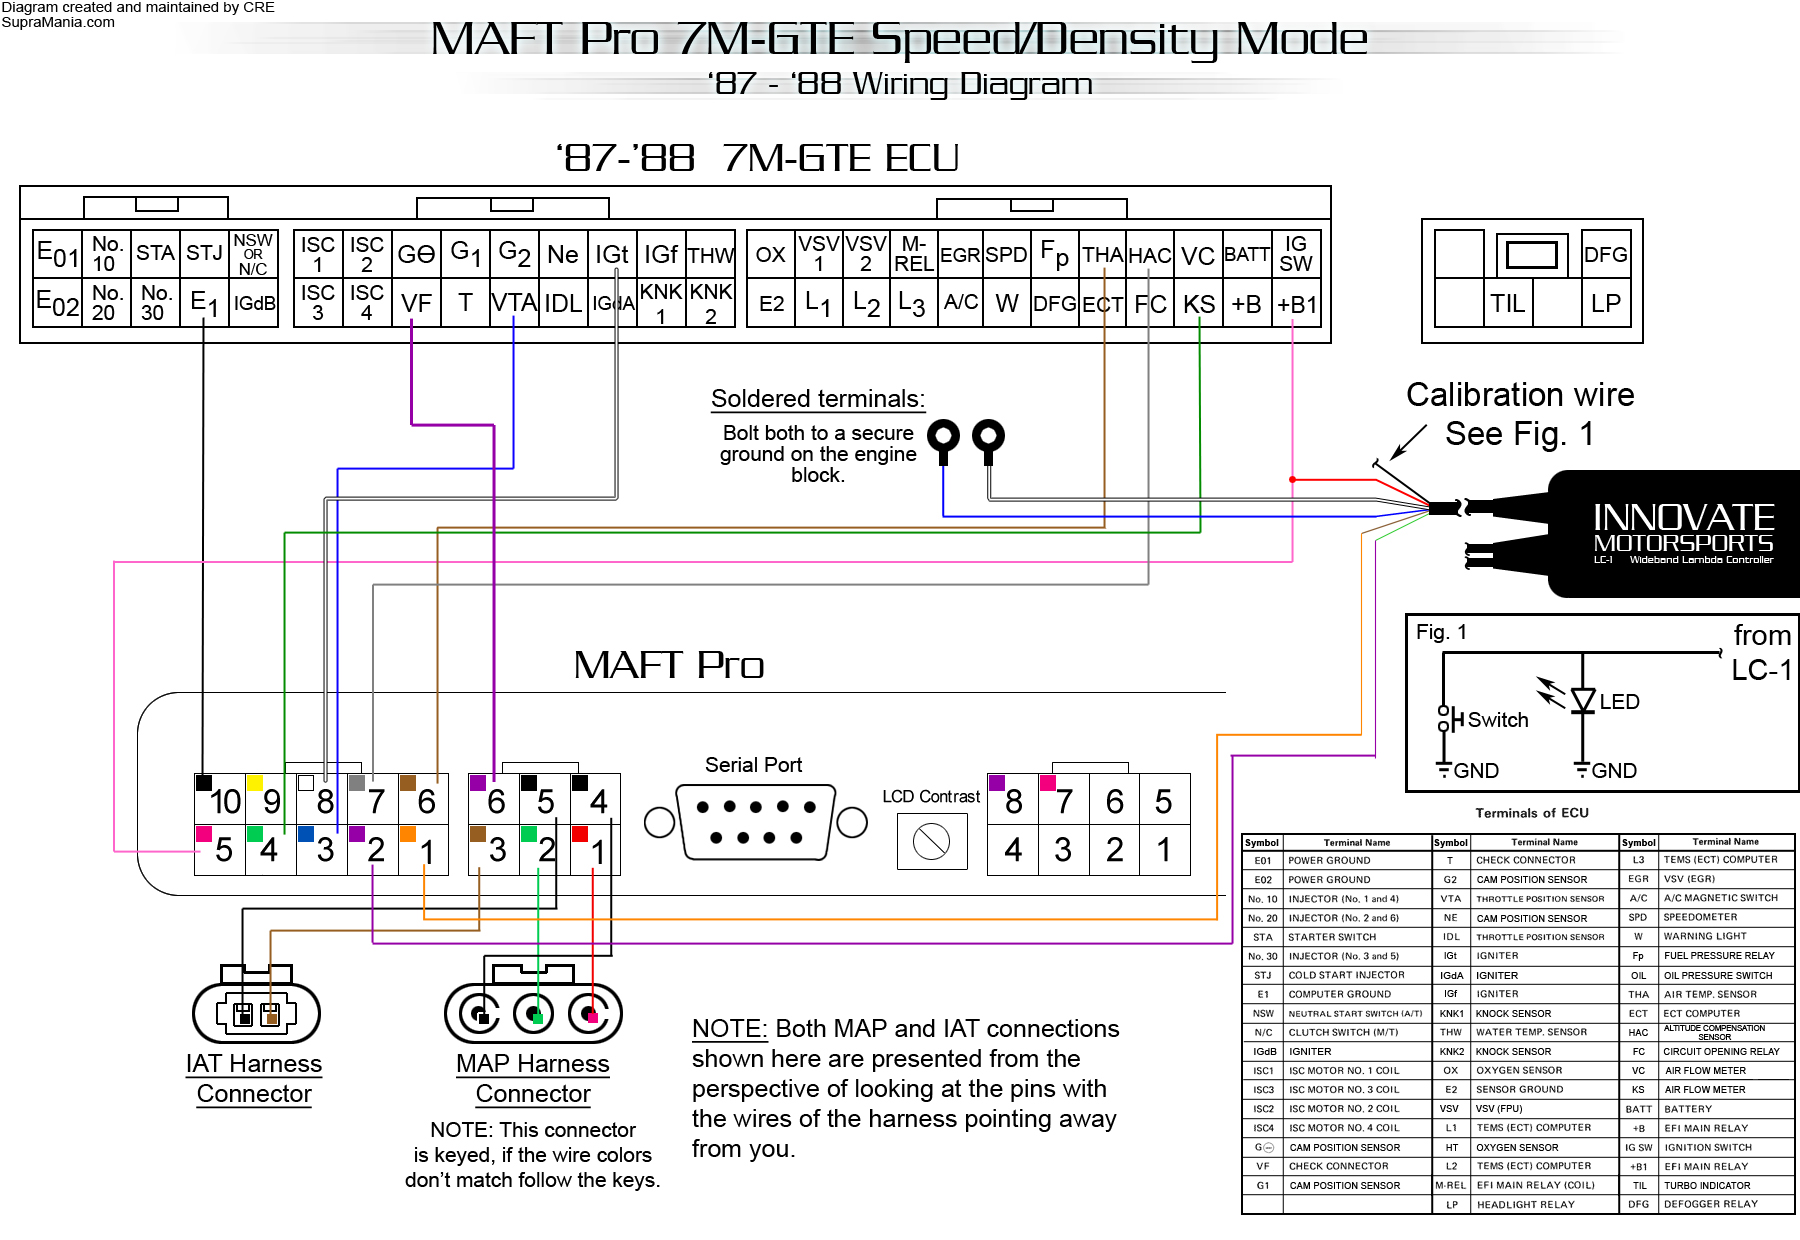 MAFT Pro 7M GTE SD 87 88 maft pro 7m gte sd 87 88 jpg 7mgte wiring diagram at gsmx.co